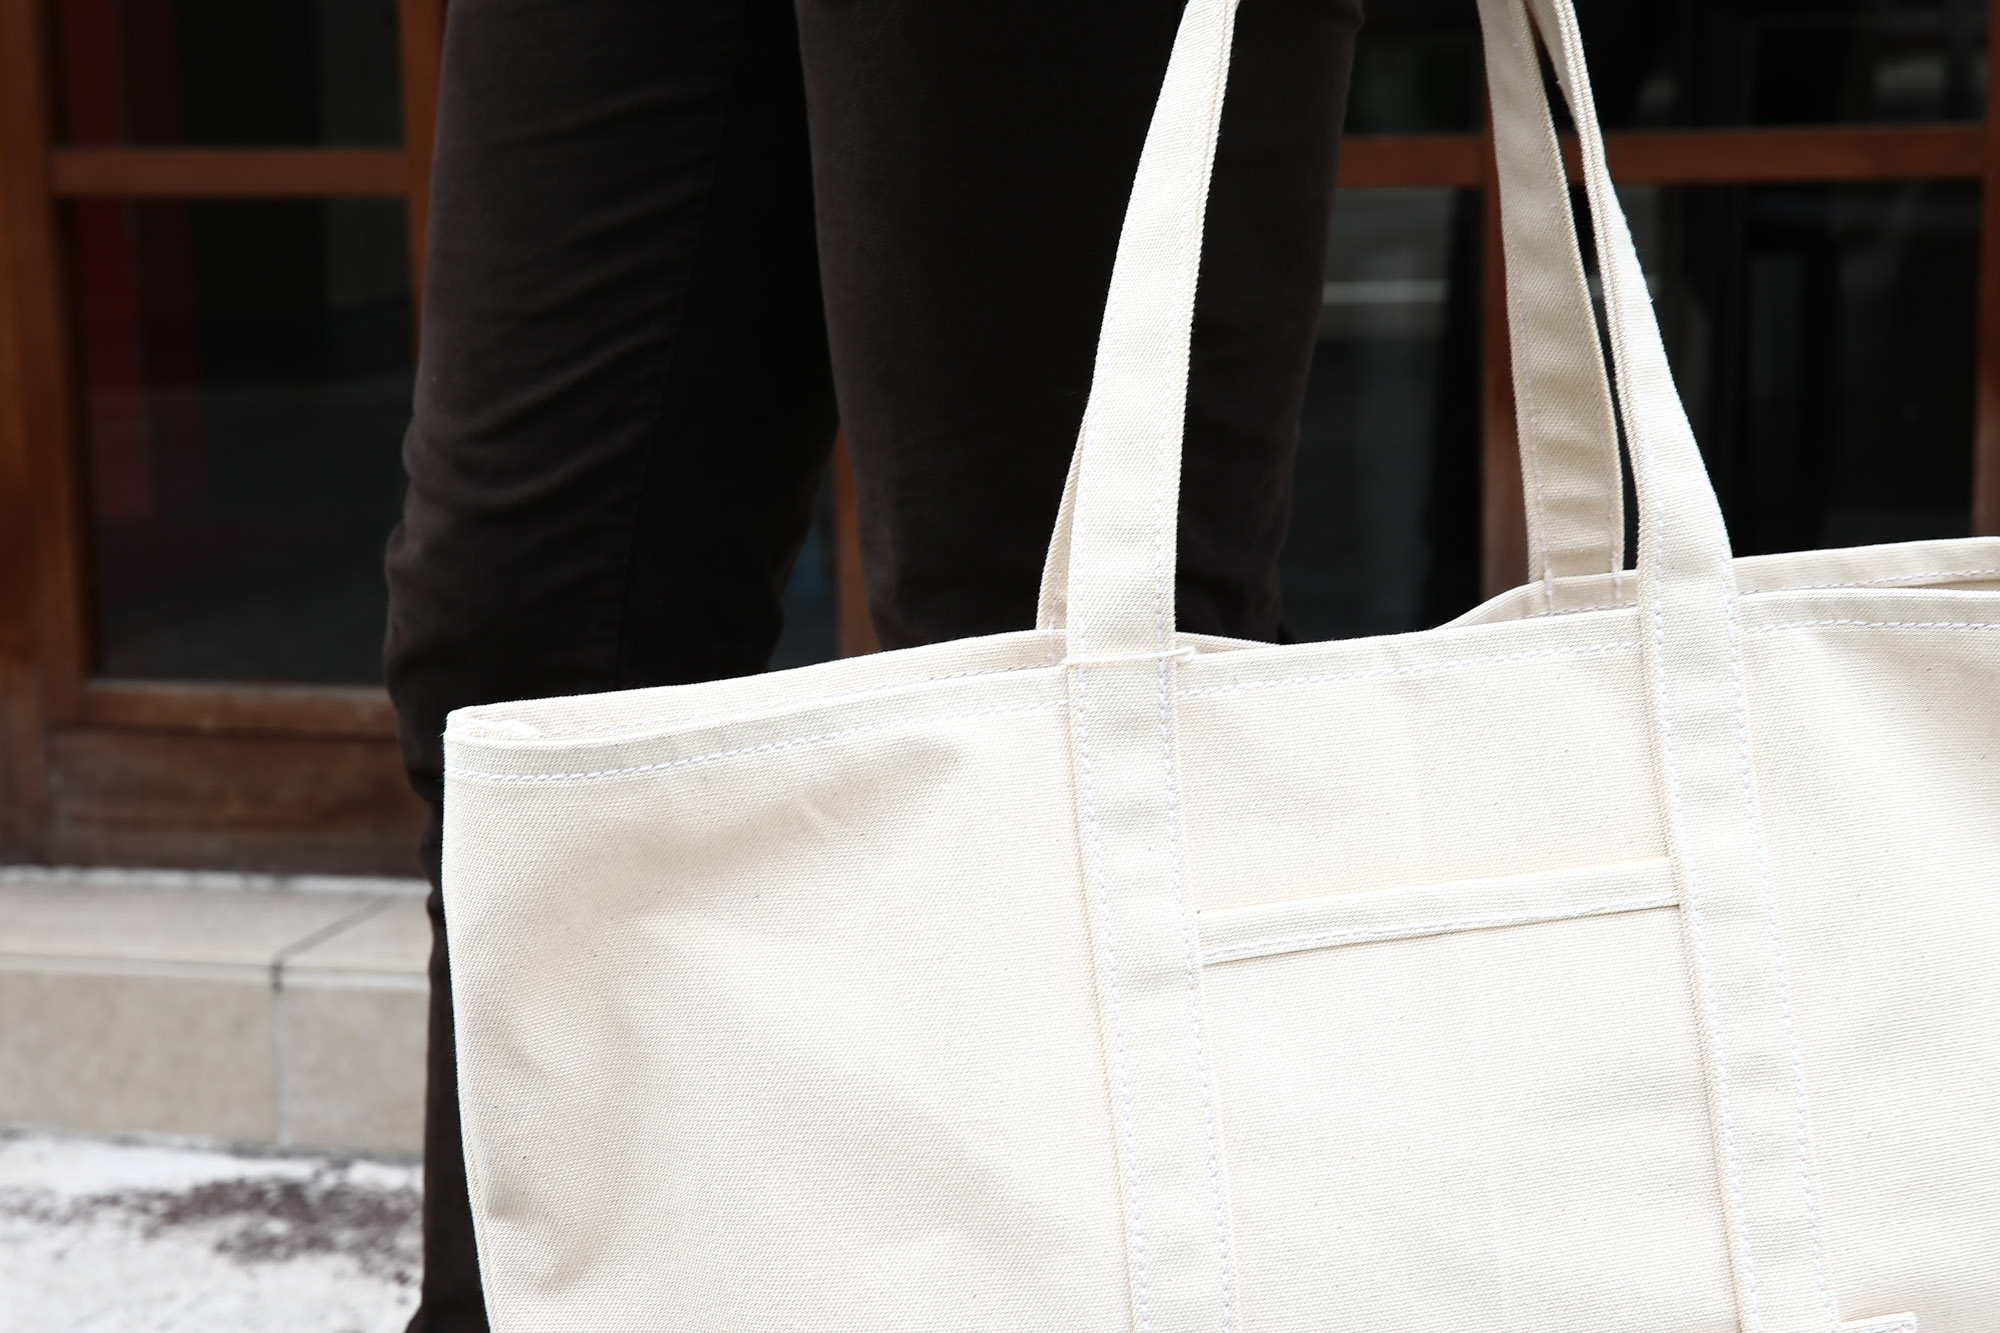 LEATHER COTTAG(レザーコテージ) 6oz Heavy Canvas 6オンスヘビーキャンバスCanvas Tote Bag キャンバストートバッグ NATURAL (ナチュラル)  MADE IN USA(アメリカ製)  のコーディネート画像。愛知 名古屋 ZODIAC ゾディアック バック トート